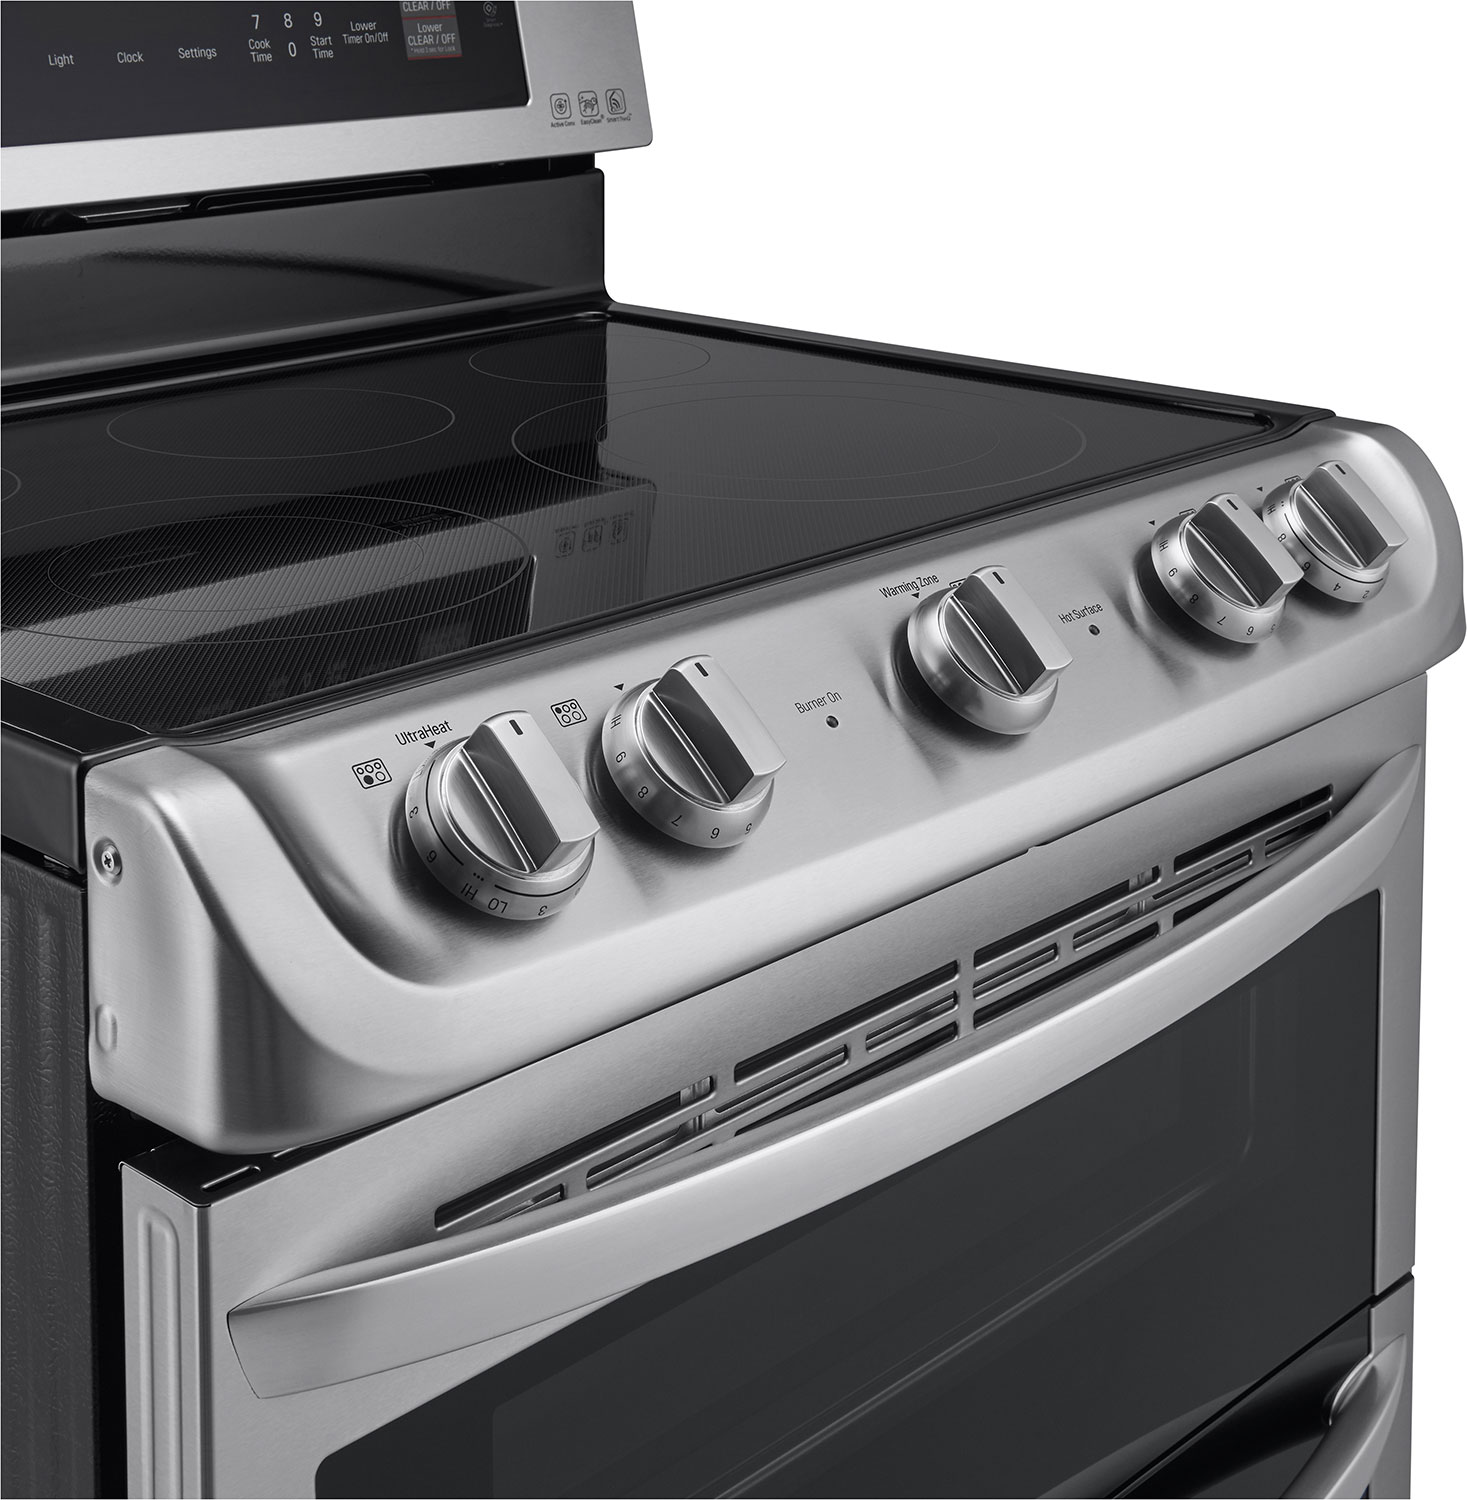 Appliances Range Lg Appliances Stainless Steel Freestanding Electric Double Oven